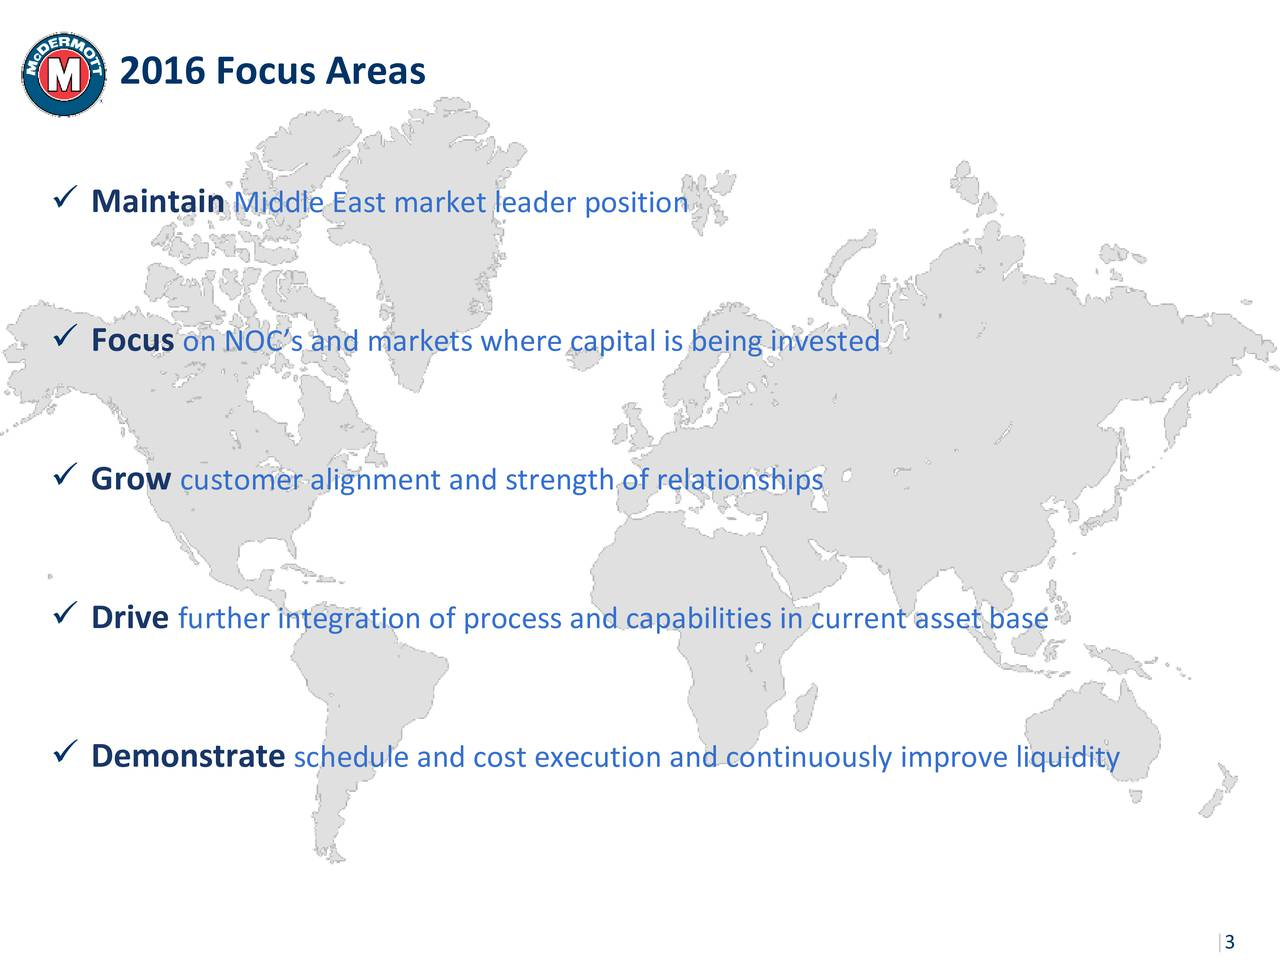 Maintain Middle East market leader position Focus on NOCs and markets where capital is being invested Grow customer alignment and strength of relationships Drive further integration of process and capabilities in current asset base Demonstrate schedule and cost execution and continuously improve liquidity